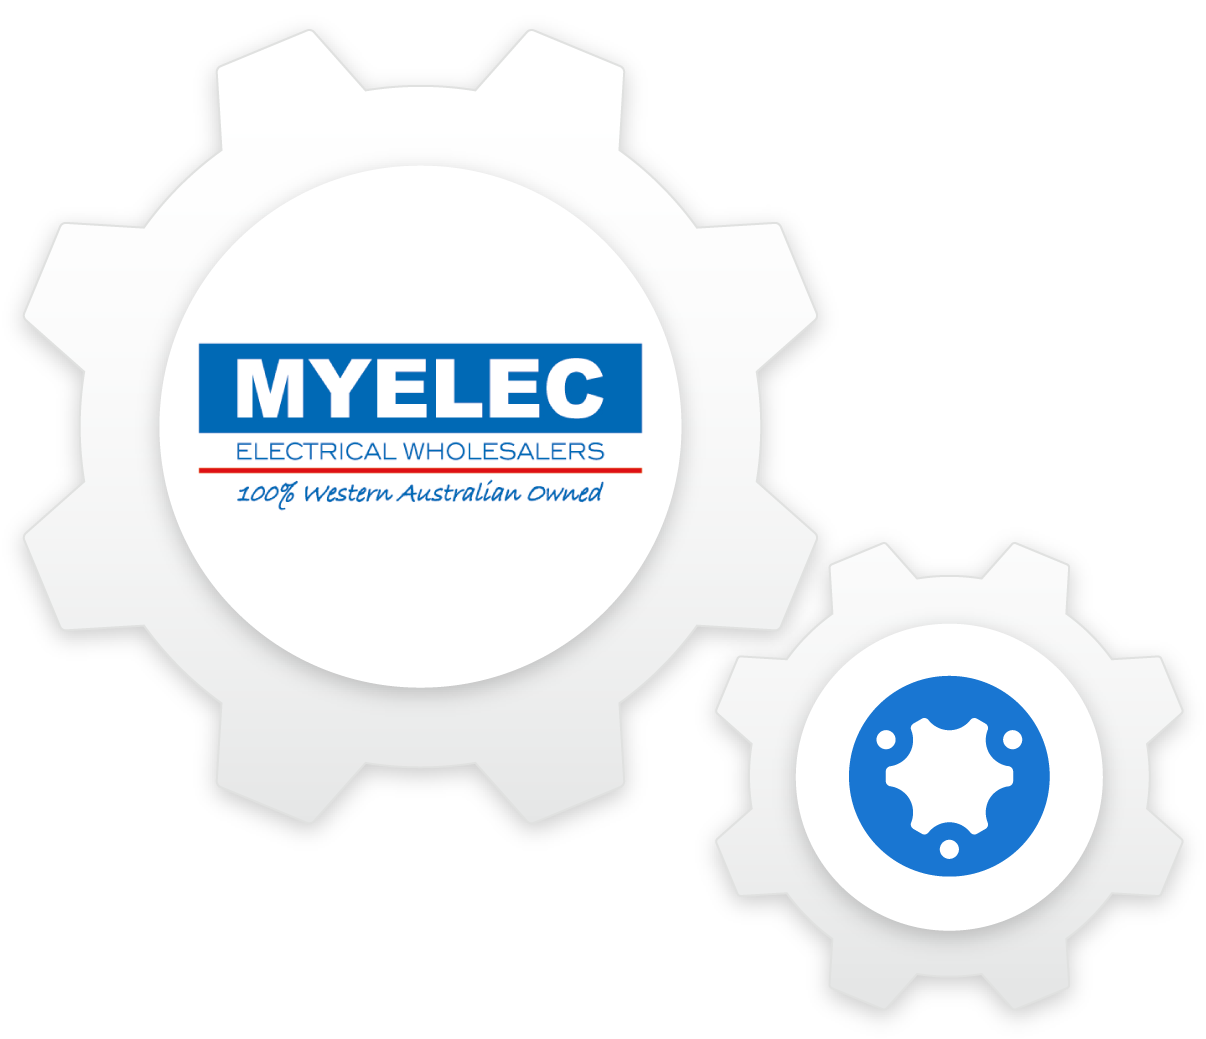 simPRO and MYELEC logos integrated into working cog pieces.